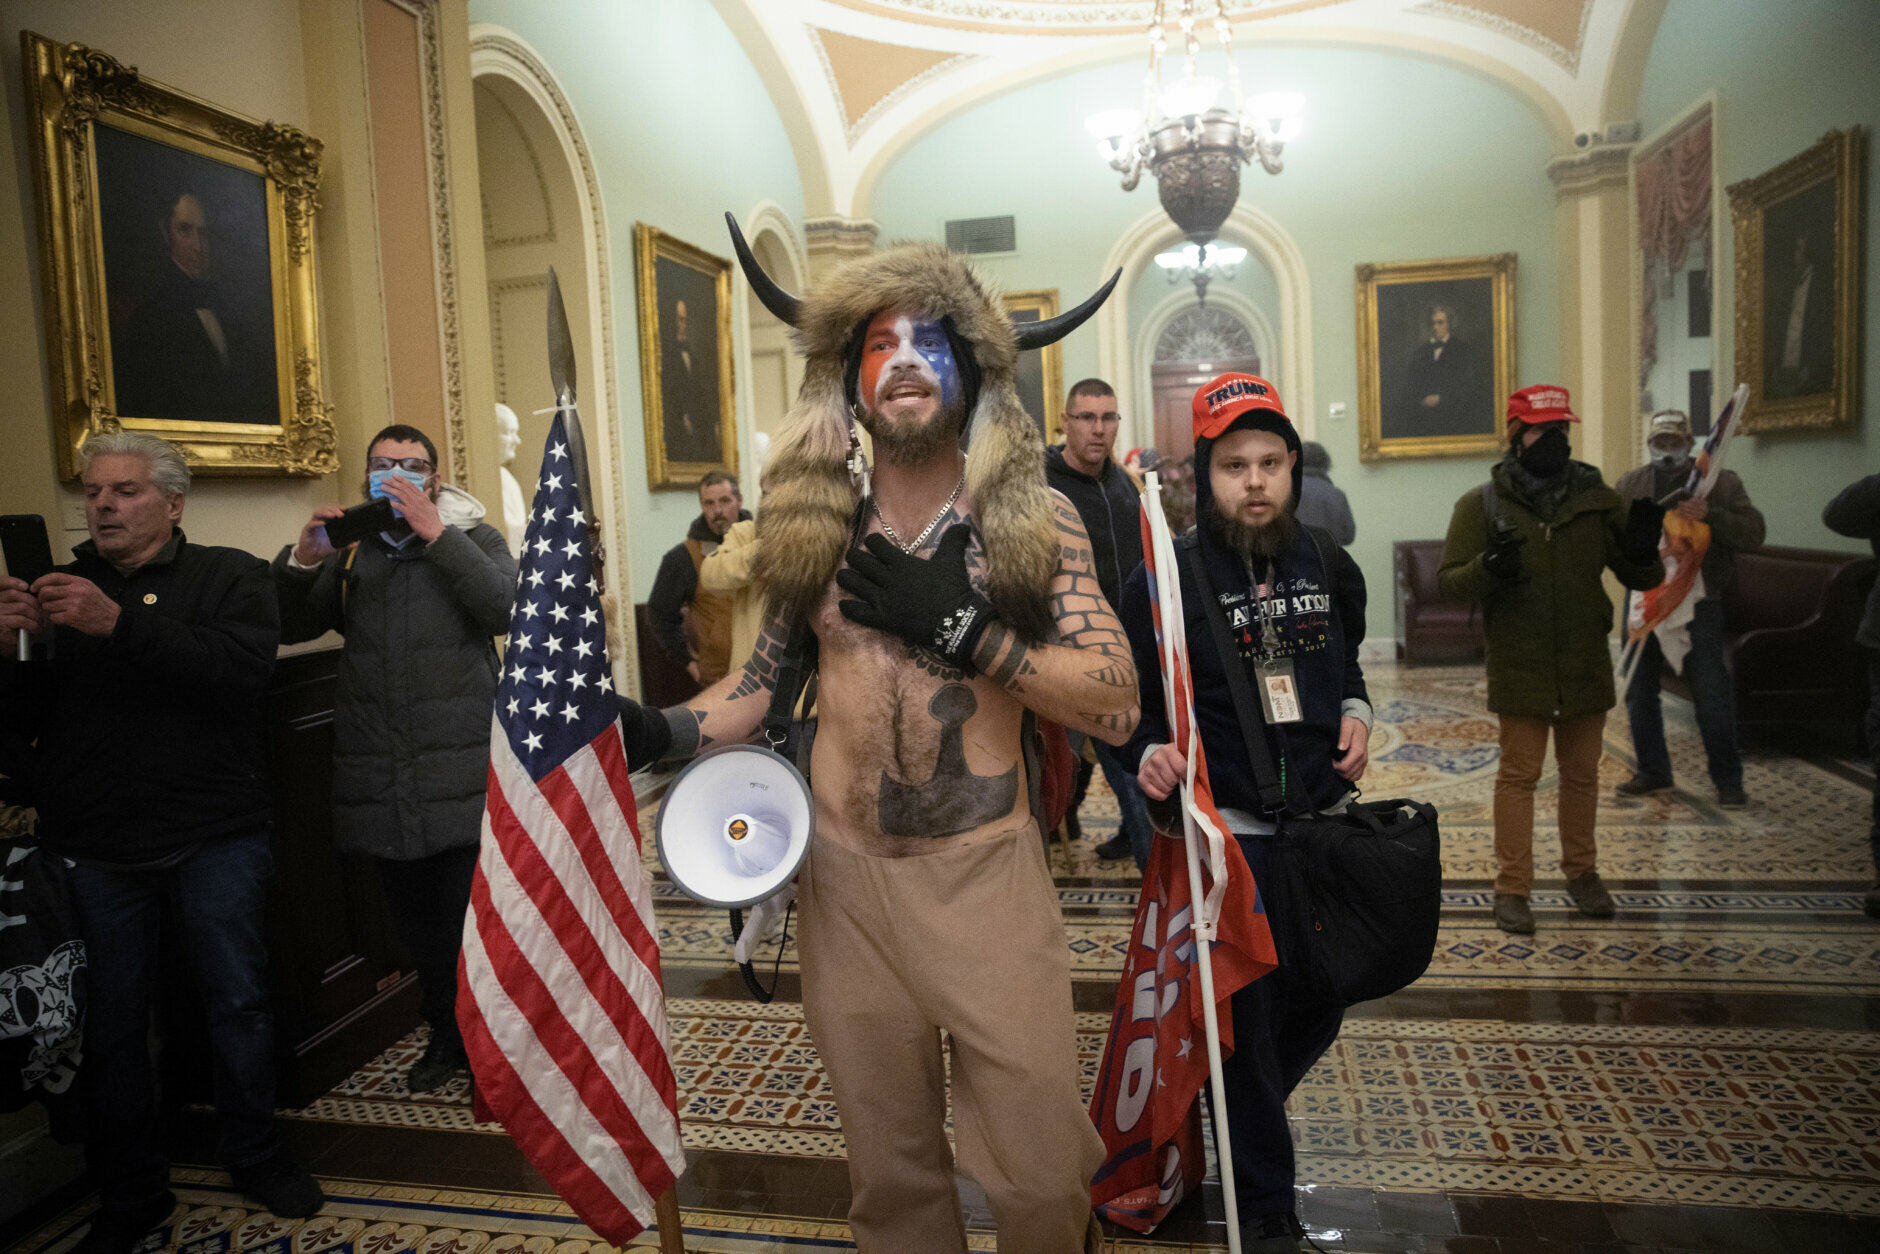 WASHINGTON, DC - JANUARY 06:  A pro-Trump mob confronts U.S. Capitol police outside the Senate chamber of the U.S. Capitol Building on January 06, 2021 in Washington, DC. Congress held a joint session today to ratify President-elect Joe Biden's 306-232 Electoral College win over President Donald Trump. A group of Republican senators said they would reject the Electoral College votes of several states unless Congress appointed a commission to audit the election results. (Photo by Win McNamee/Getty Images)